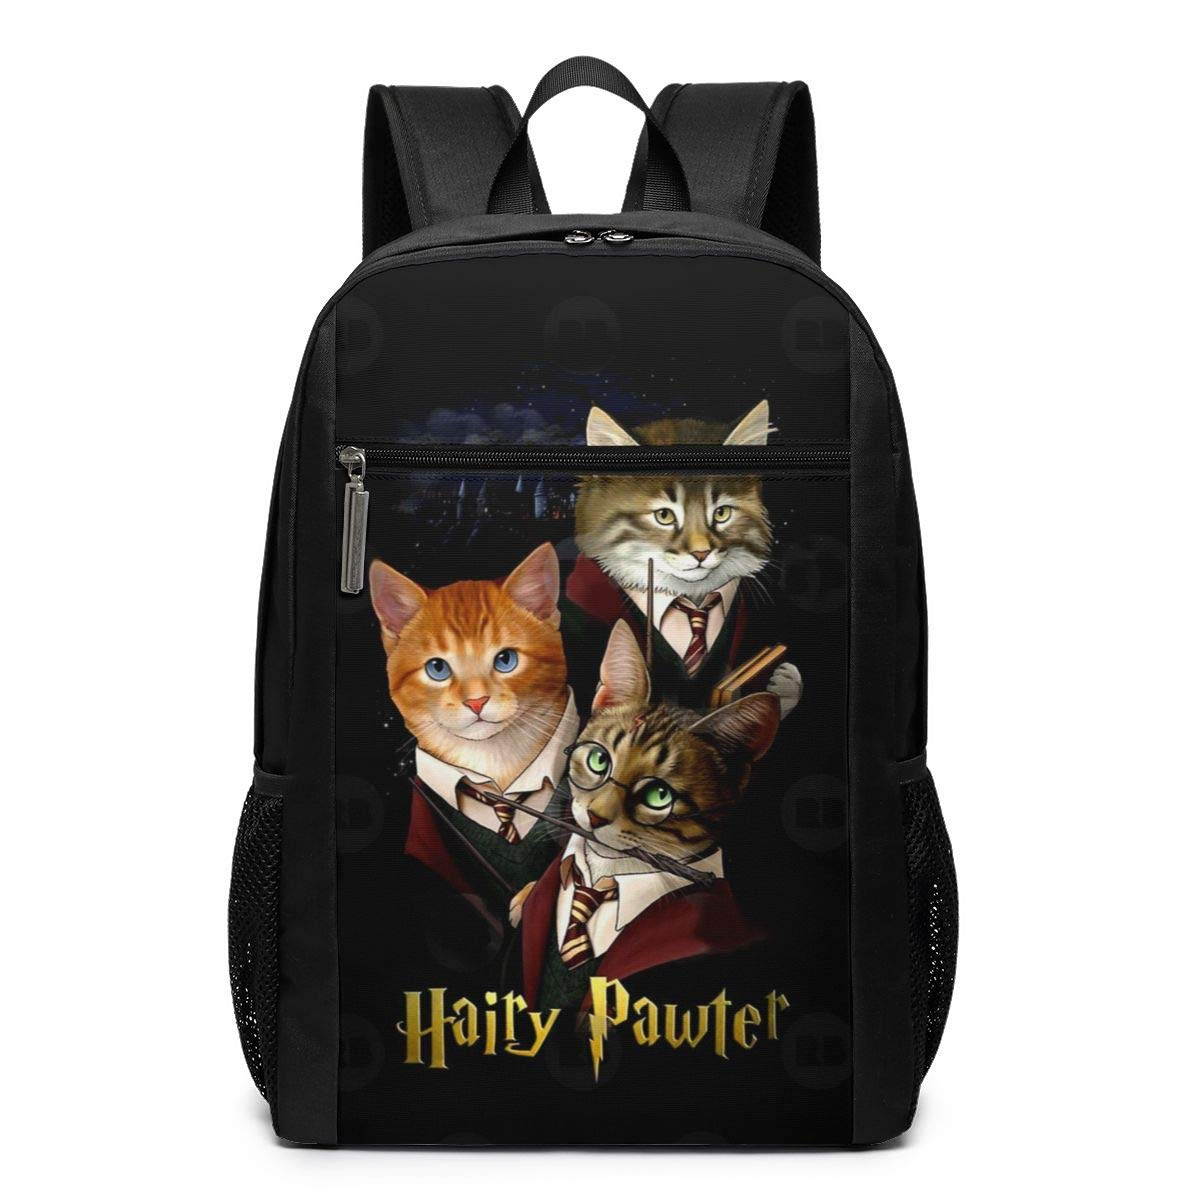 Hairy Pawter Funny Cats Travel Laptop Backpack Durable College School Computer Bag for Men Women Kids Backpacks